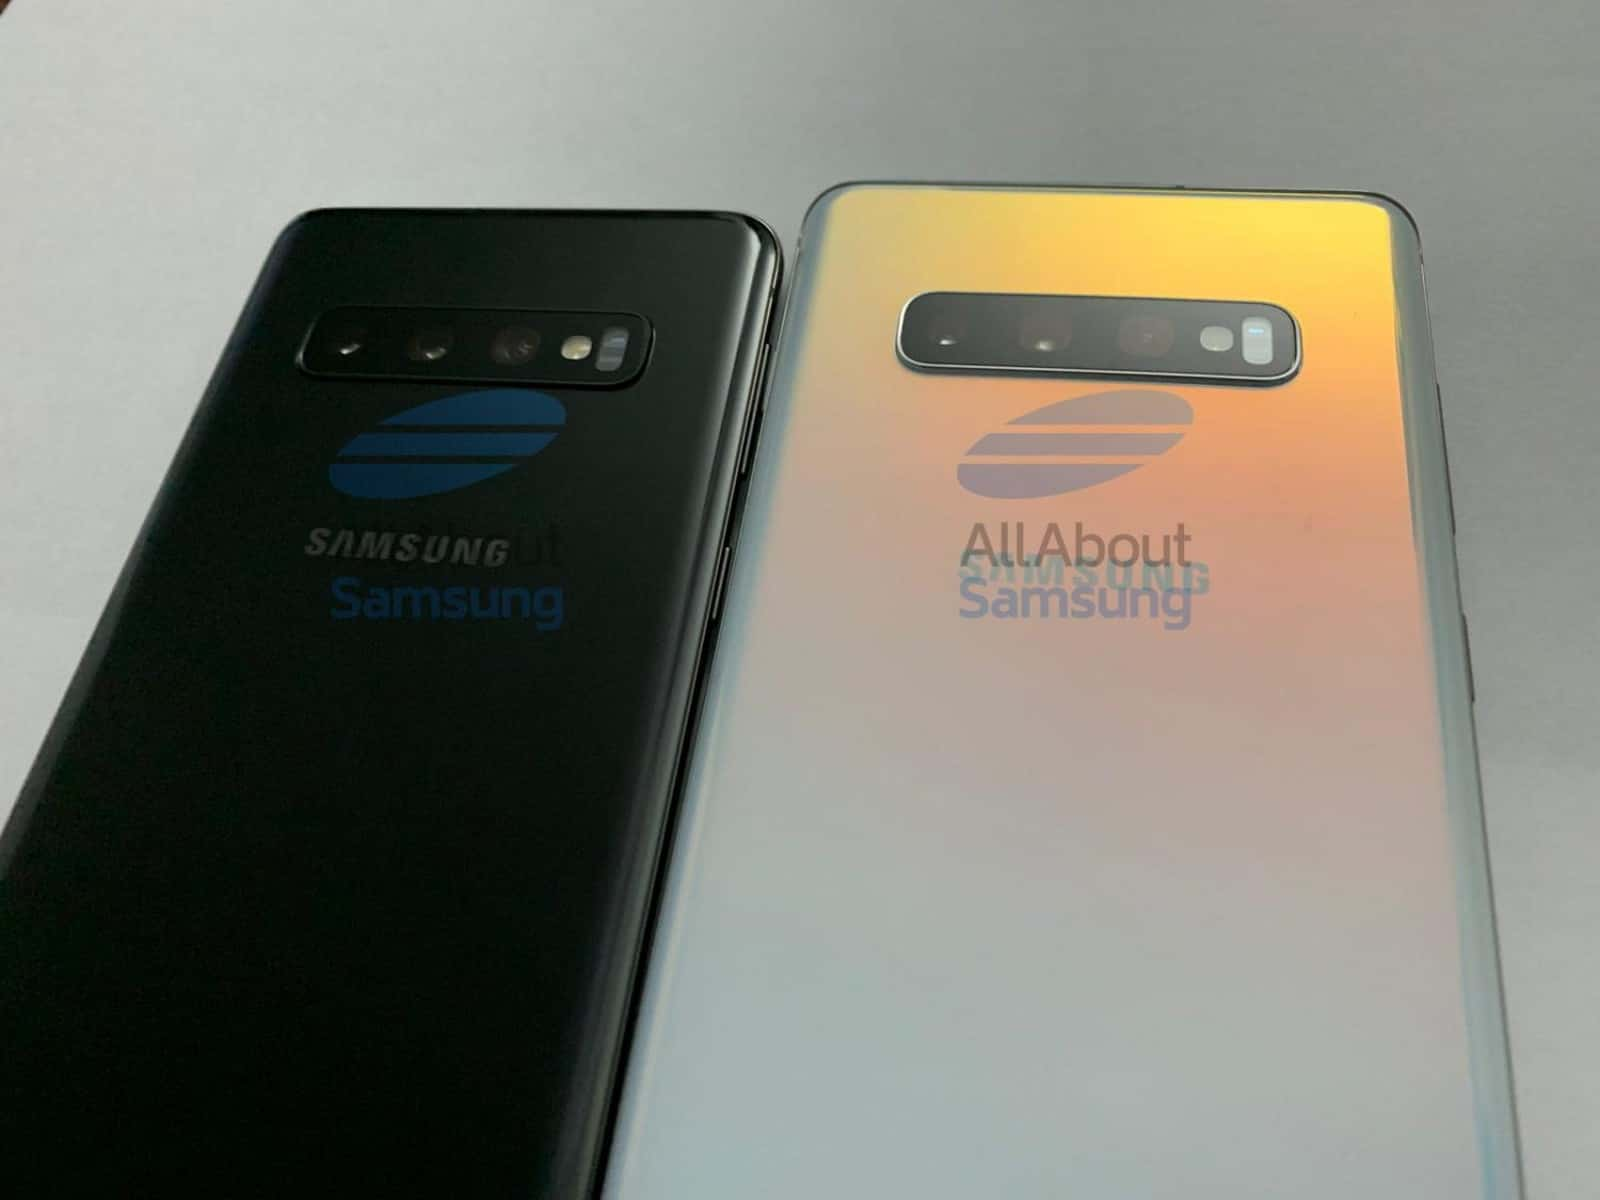 Galaxy S10 S10 real life image AllAboutSamsung 2